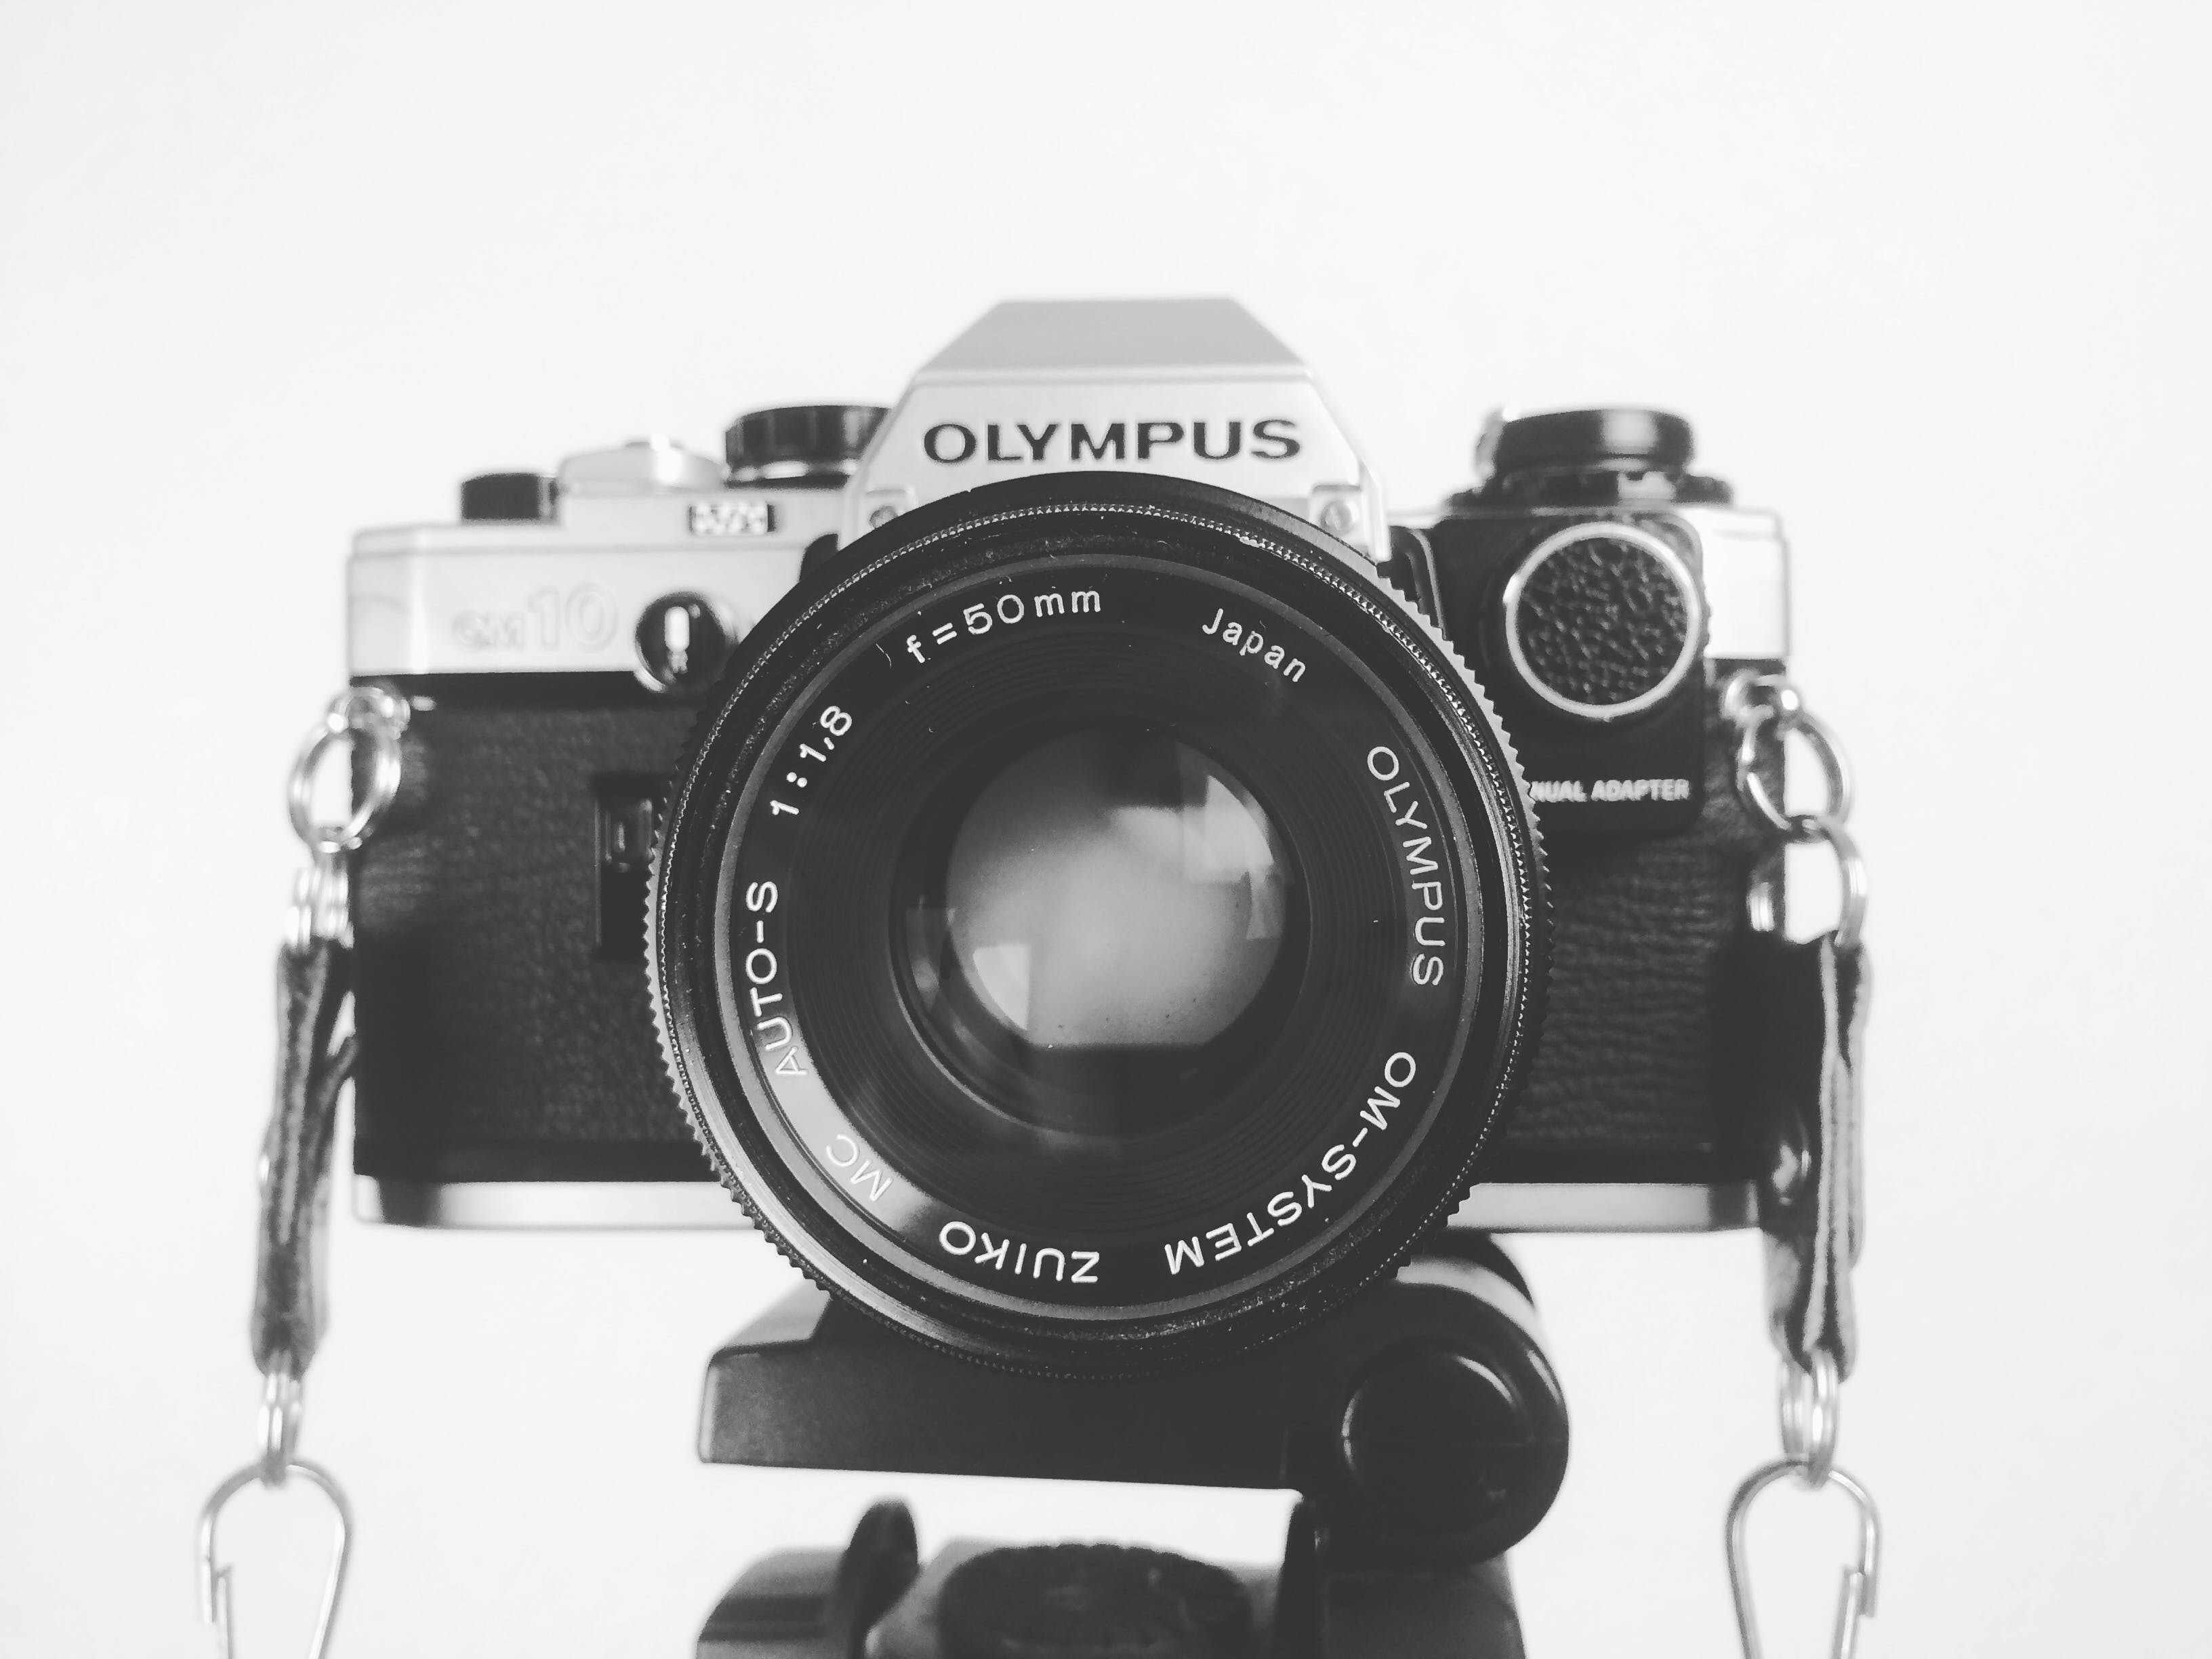 Black and Grey Olympus Body Camera